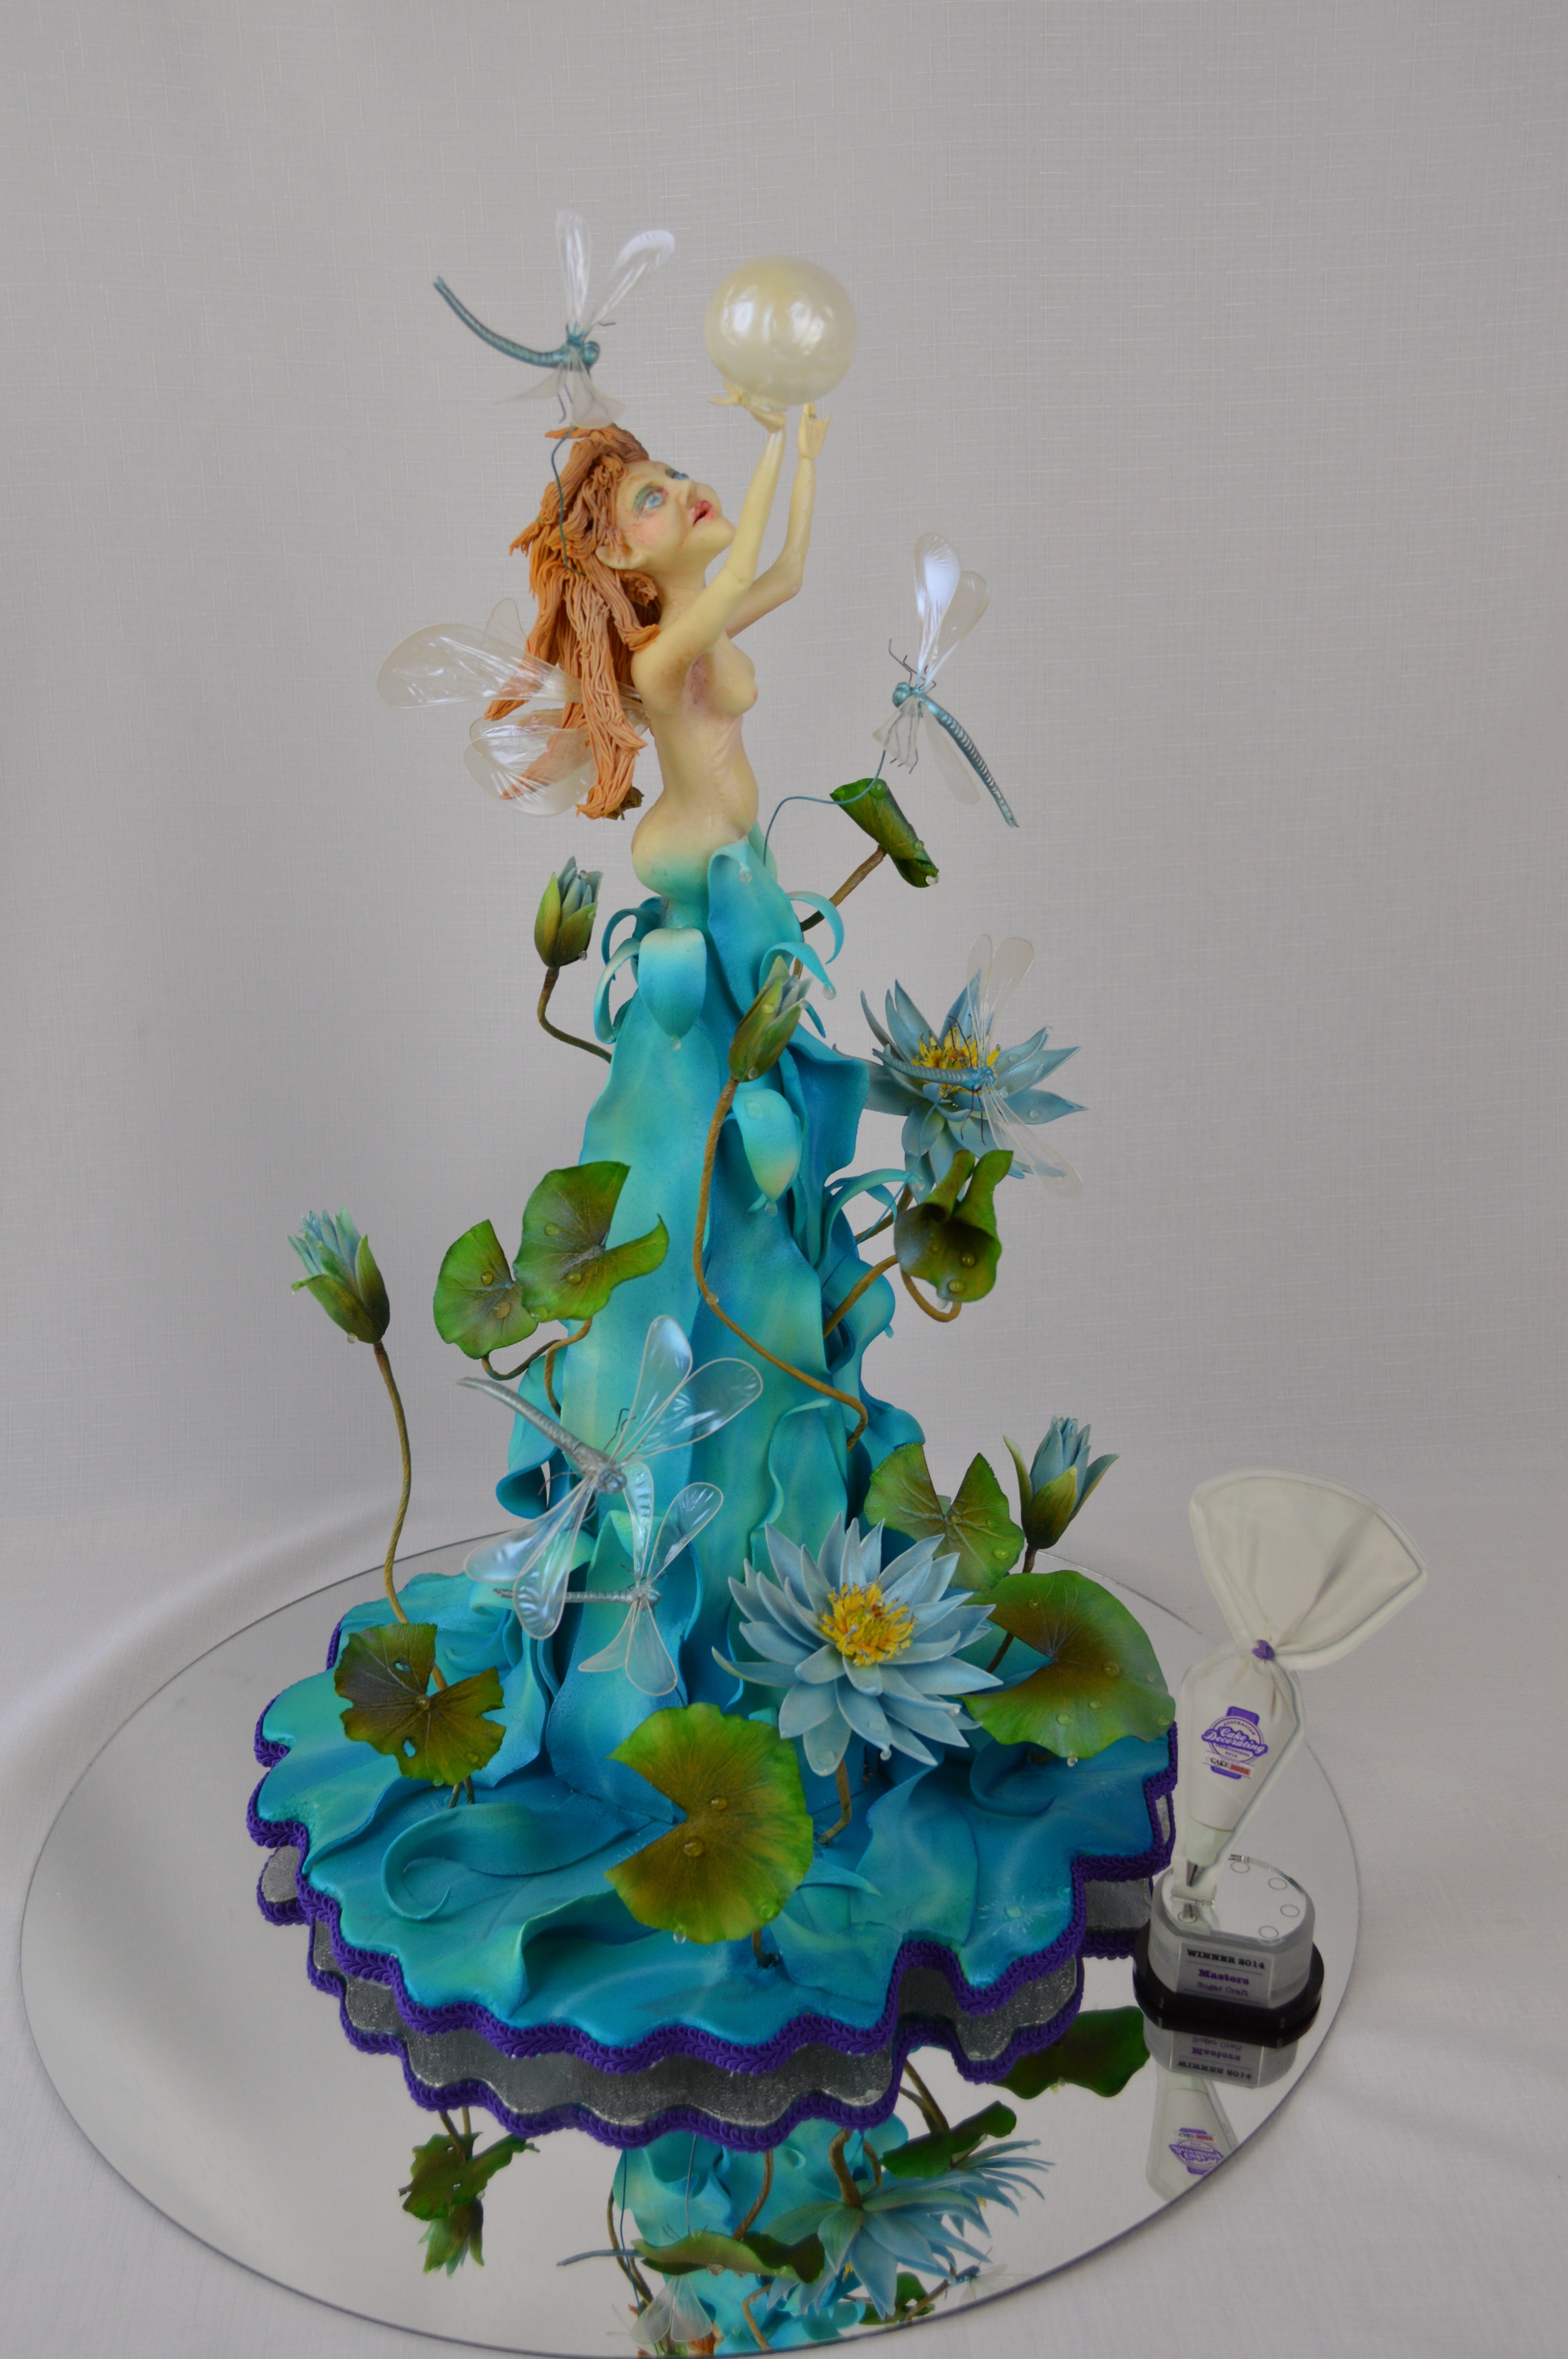 Cake Craft And Decoration Competition : Gallery SHAYNE GREENMAN